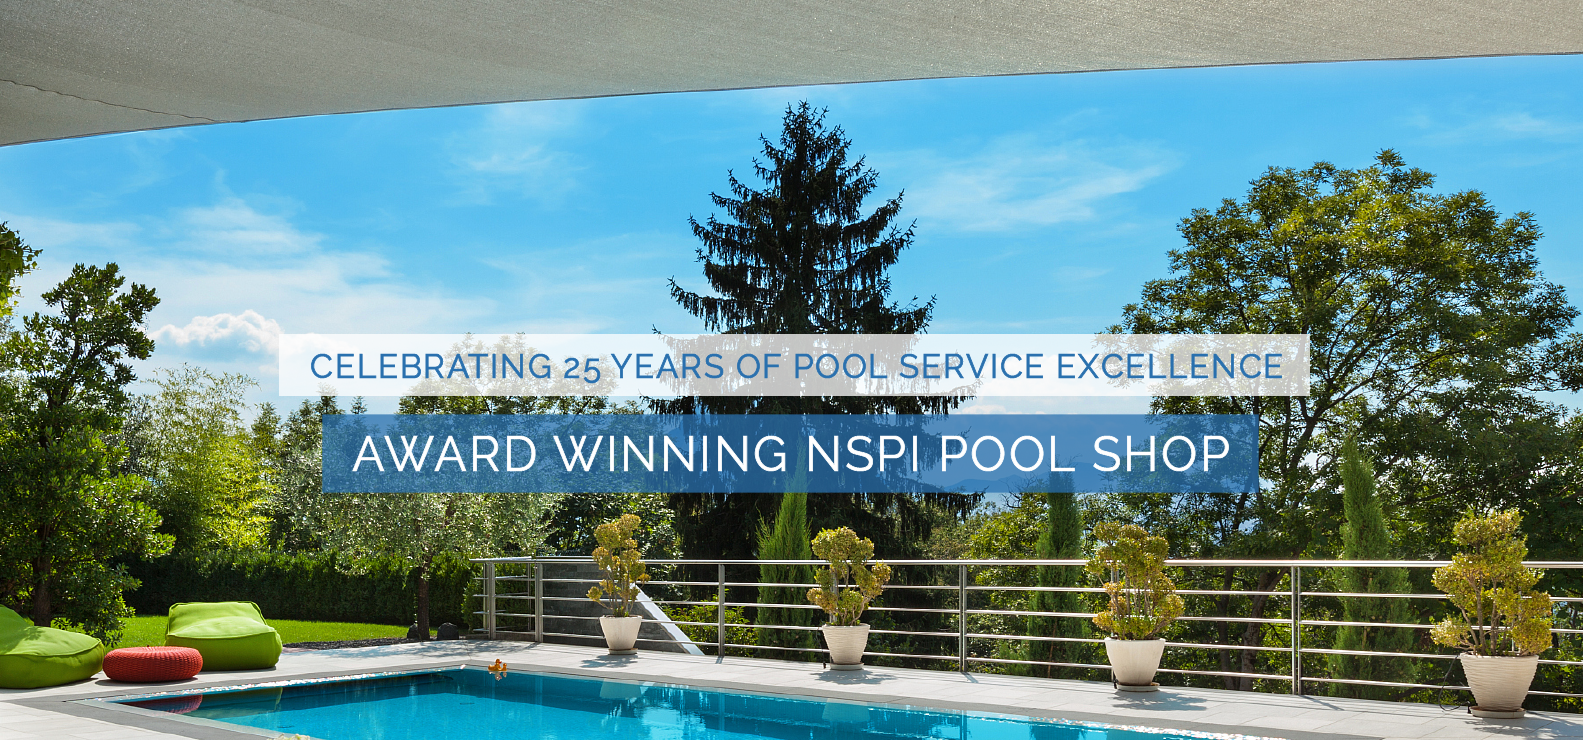 SWIMMING POOL SUPPLIES & SERVICES